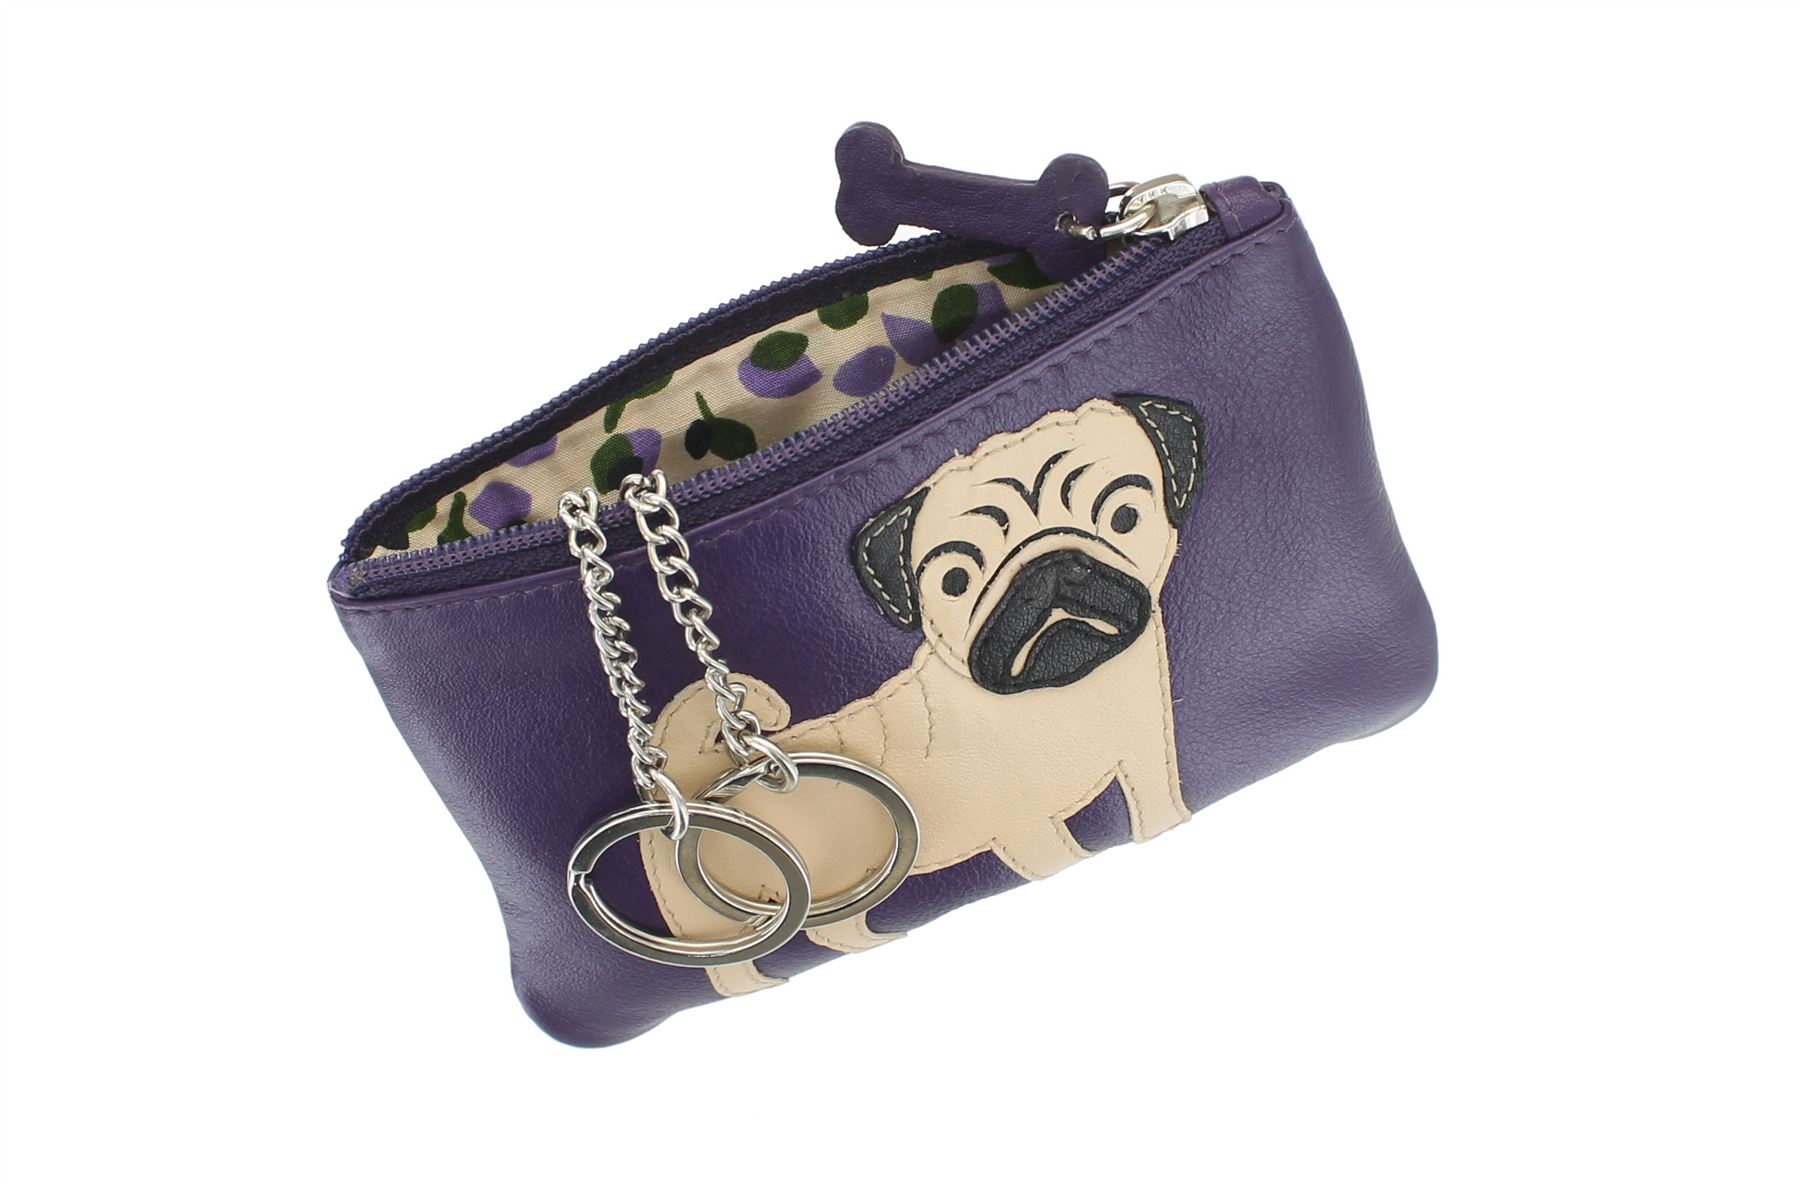 Mala Leather BEST FRIENDS Collection Leather Pug Coin Purse 4145/_65